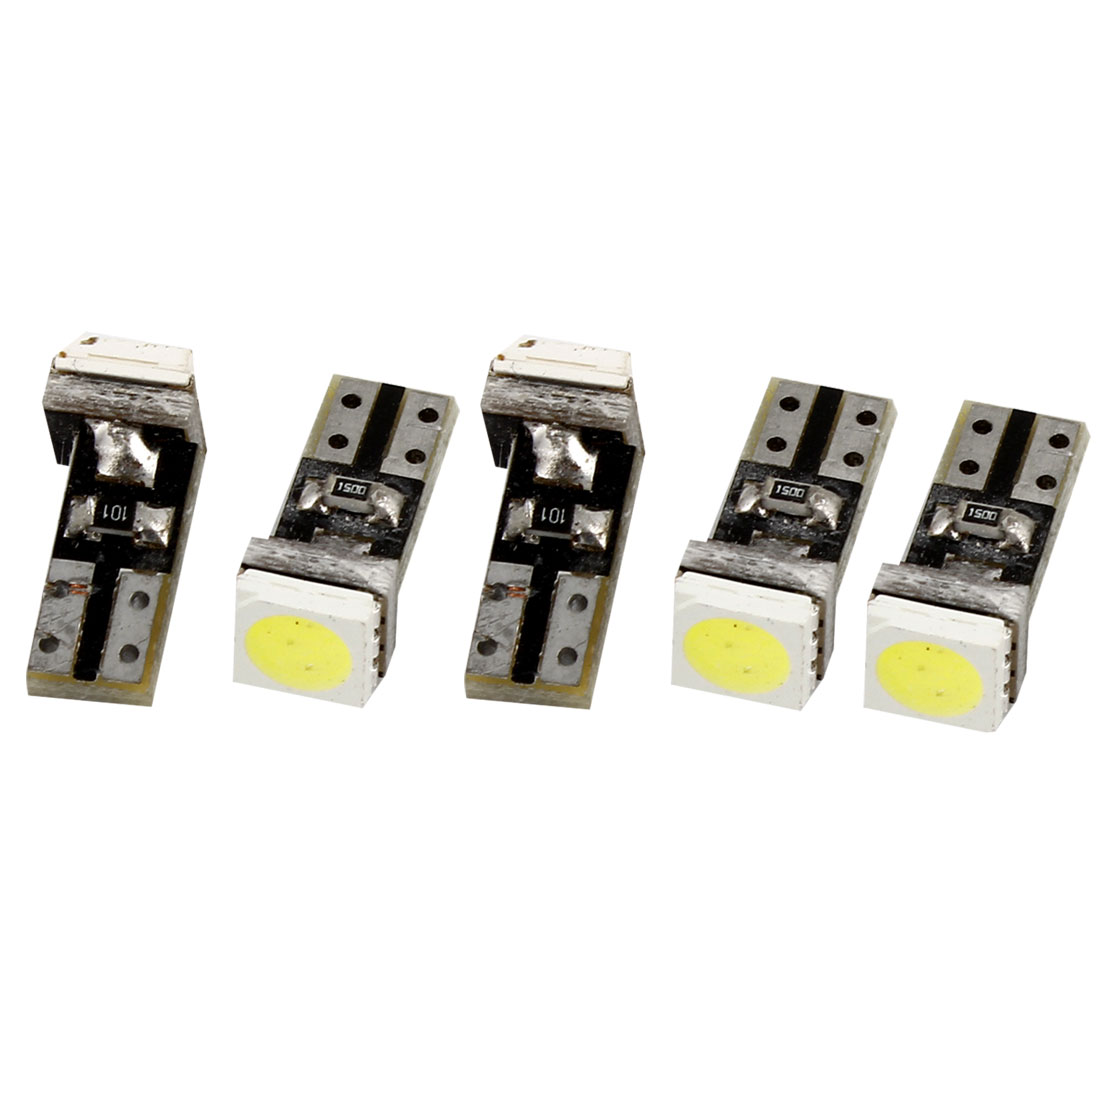 5 Pcs Auto T5 White 5050 SMD LED Tail Turning Brake Light Bulb Signal Lamp 12V internal